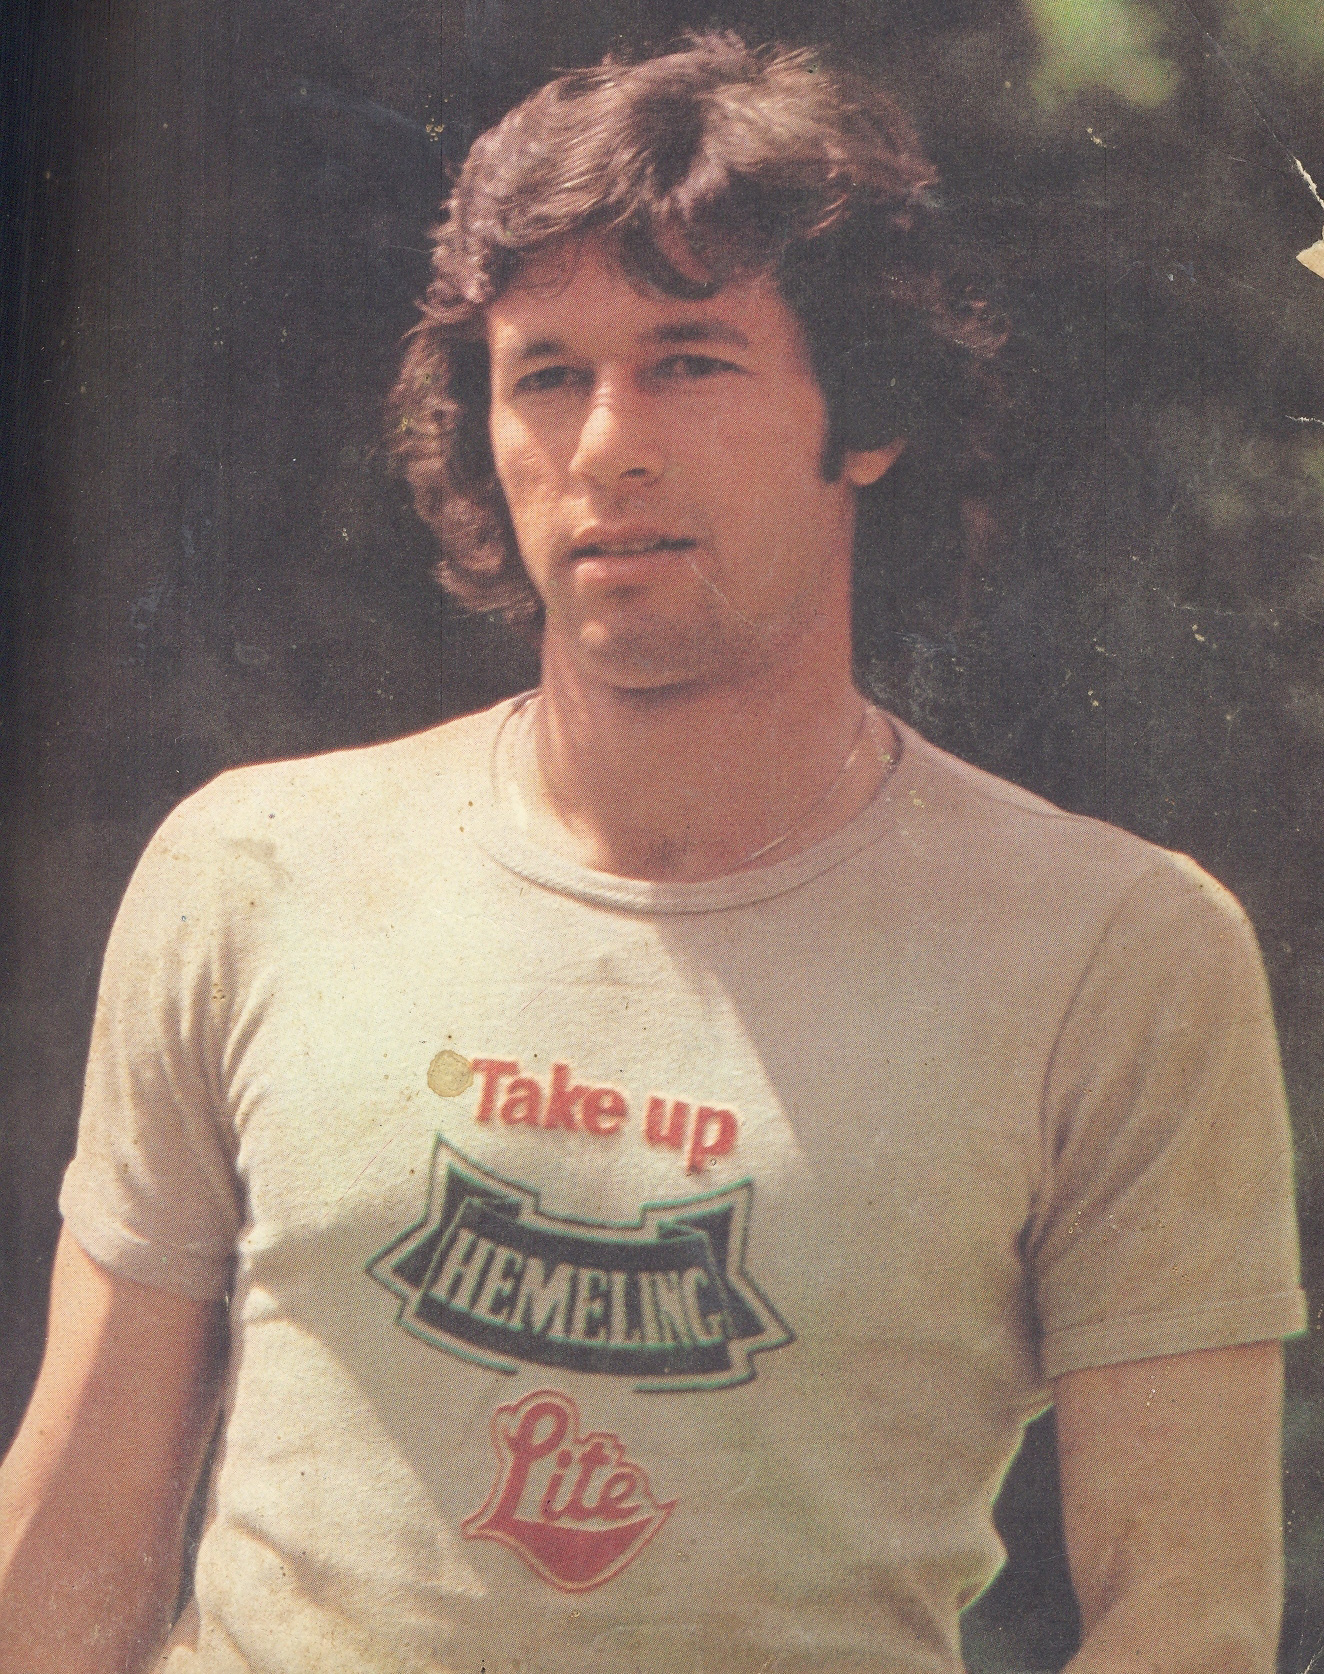 Imran Khan endorsing the once famous Australian lager, Hemeling, in Jamaica.